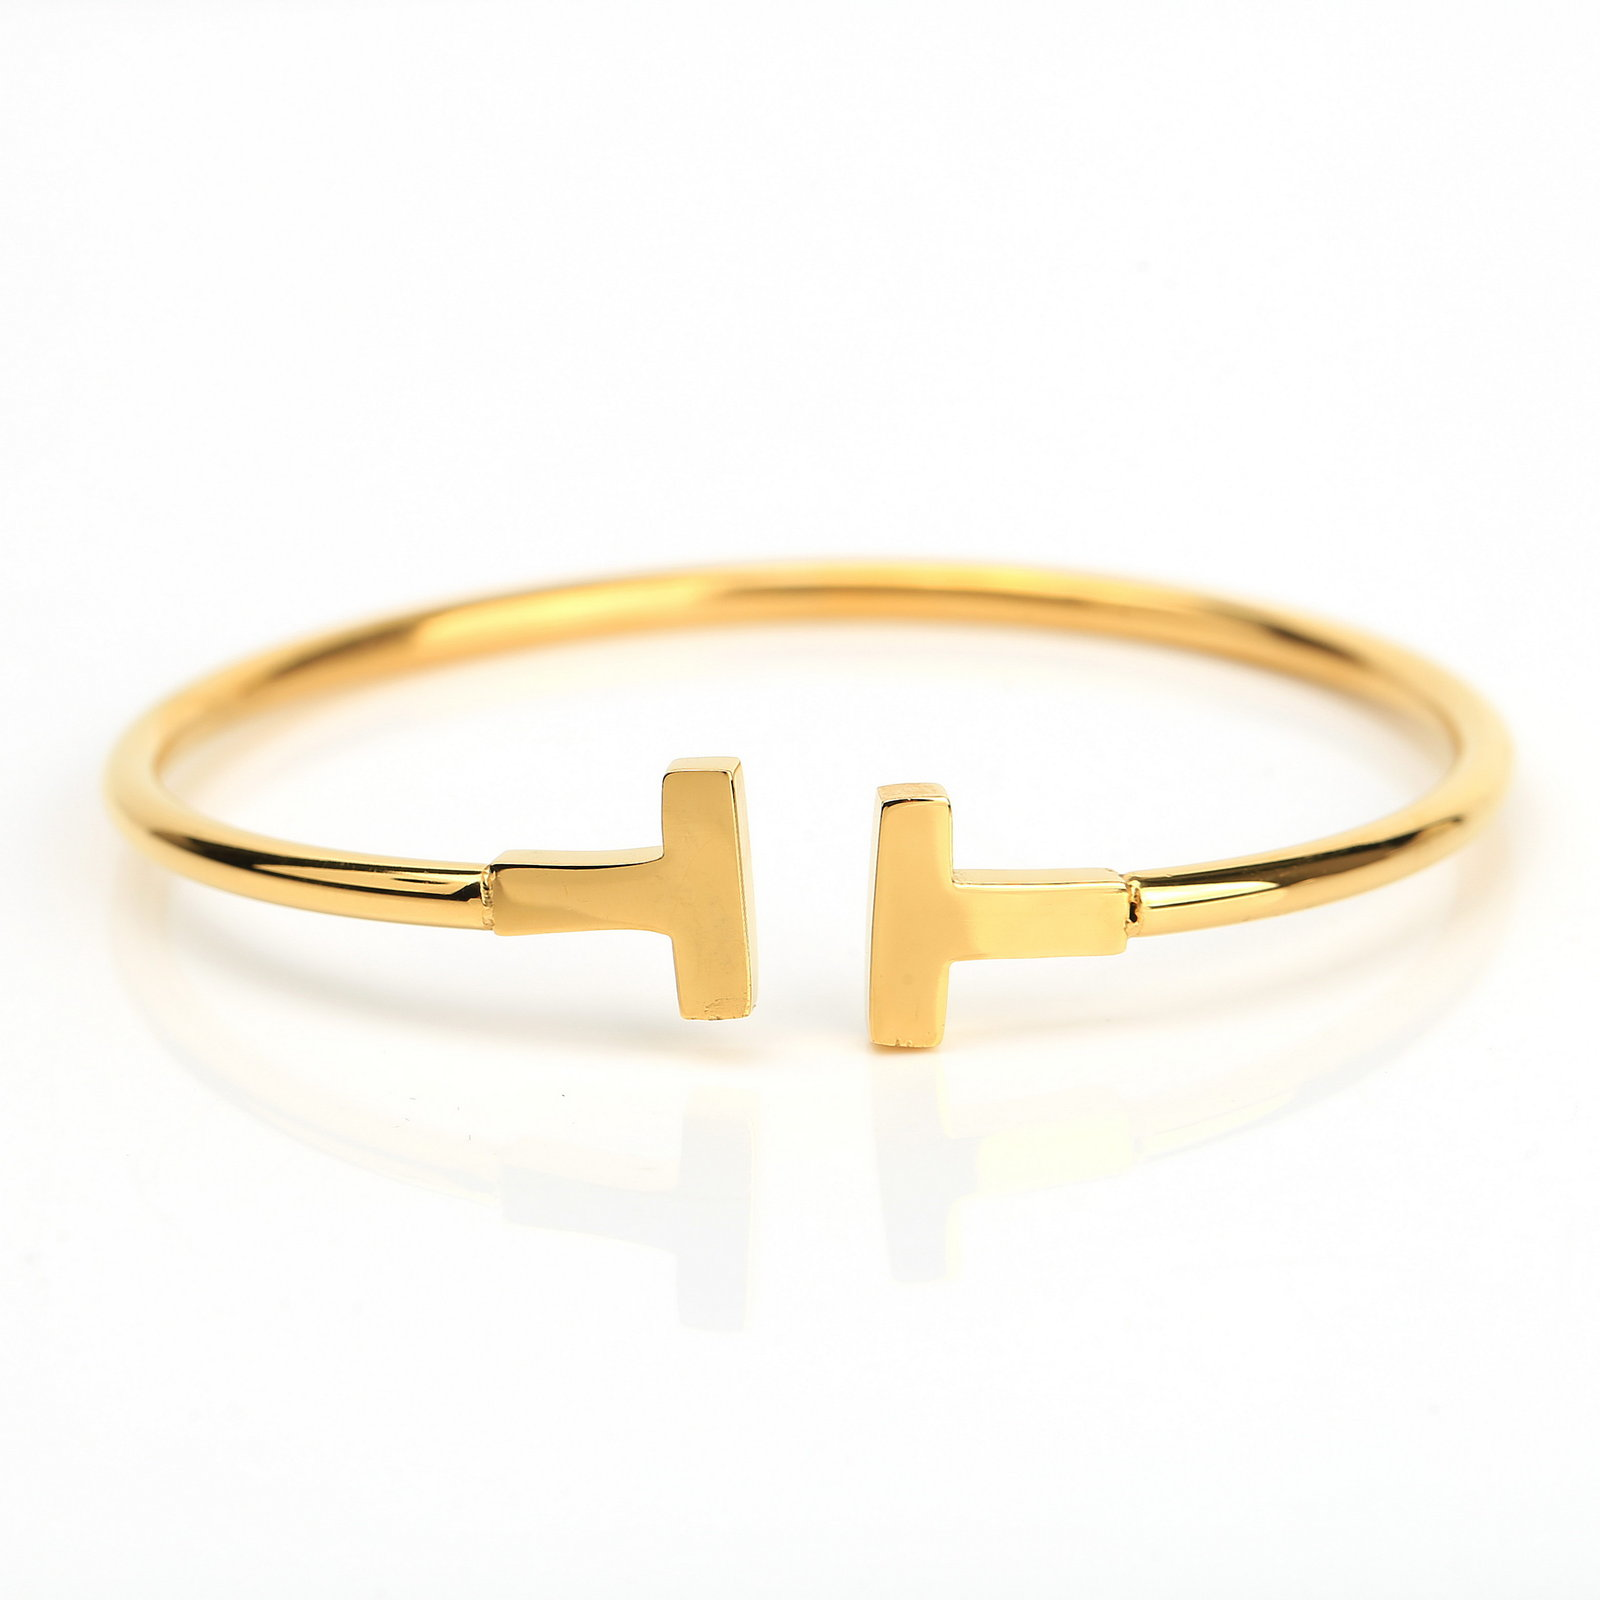 UE- Stylish Gold Tone Designer Bangle Bracelet With Contemporary T Bar Design